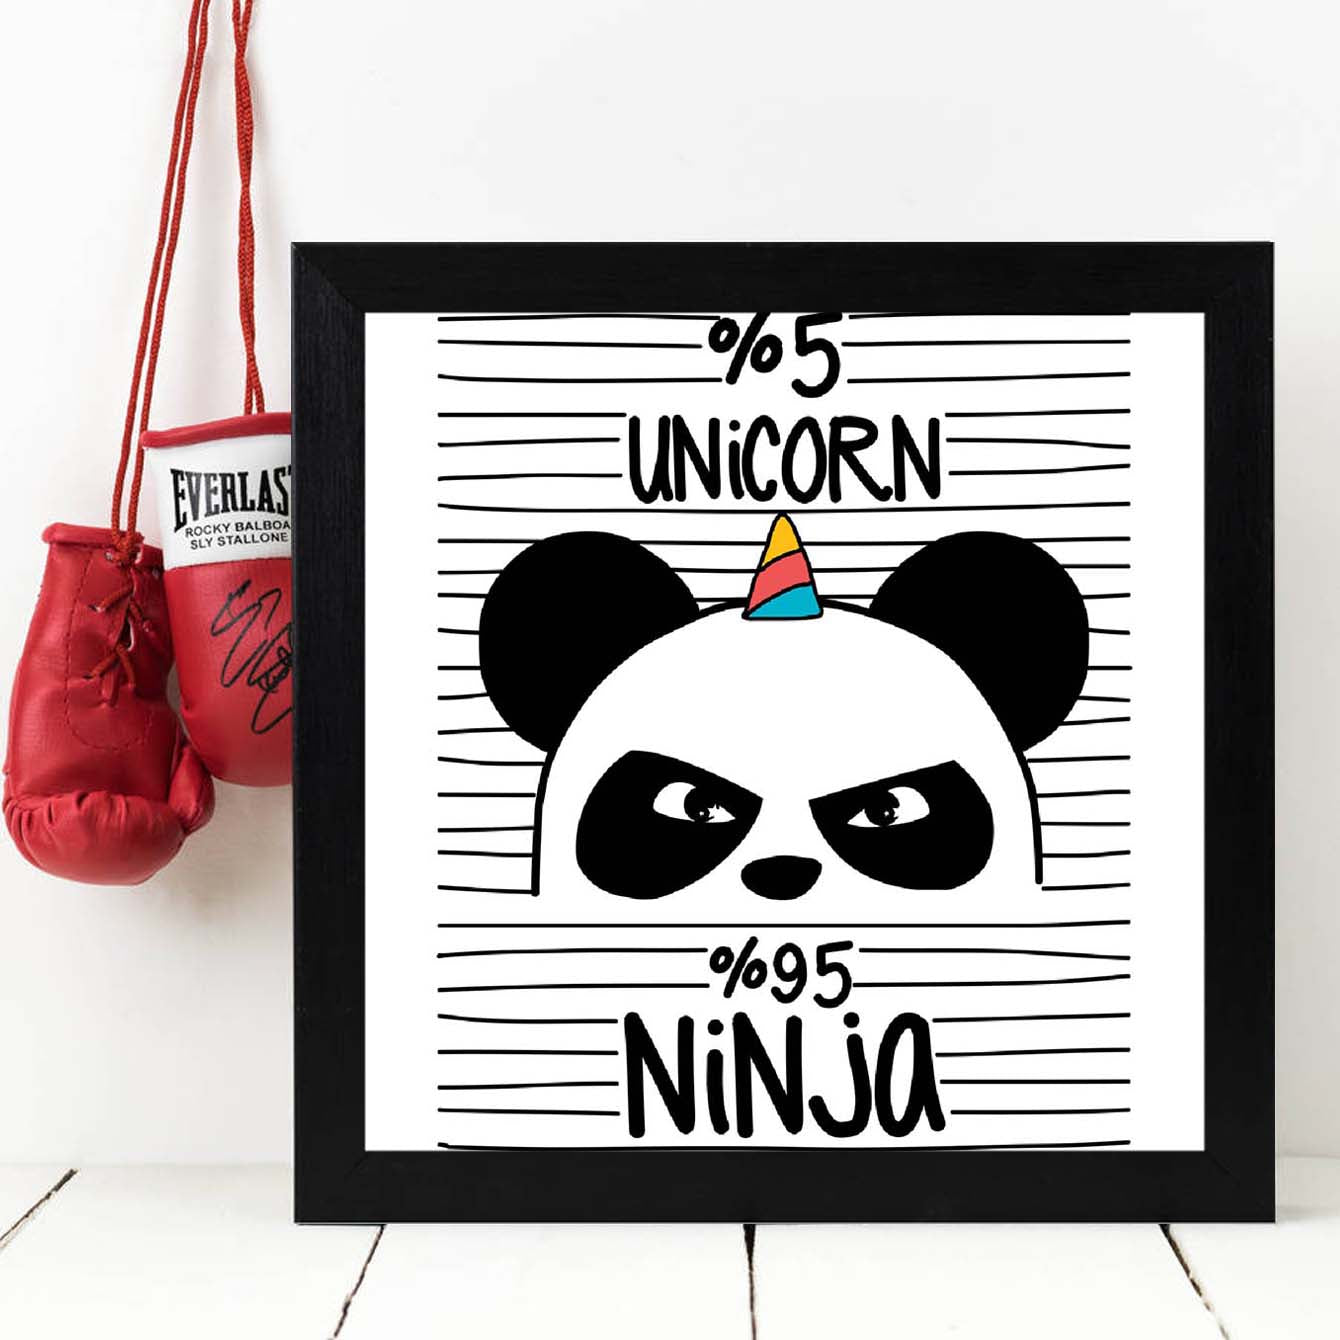 5% unicorn 95% unicorn Framed Poster